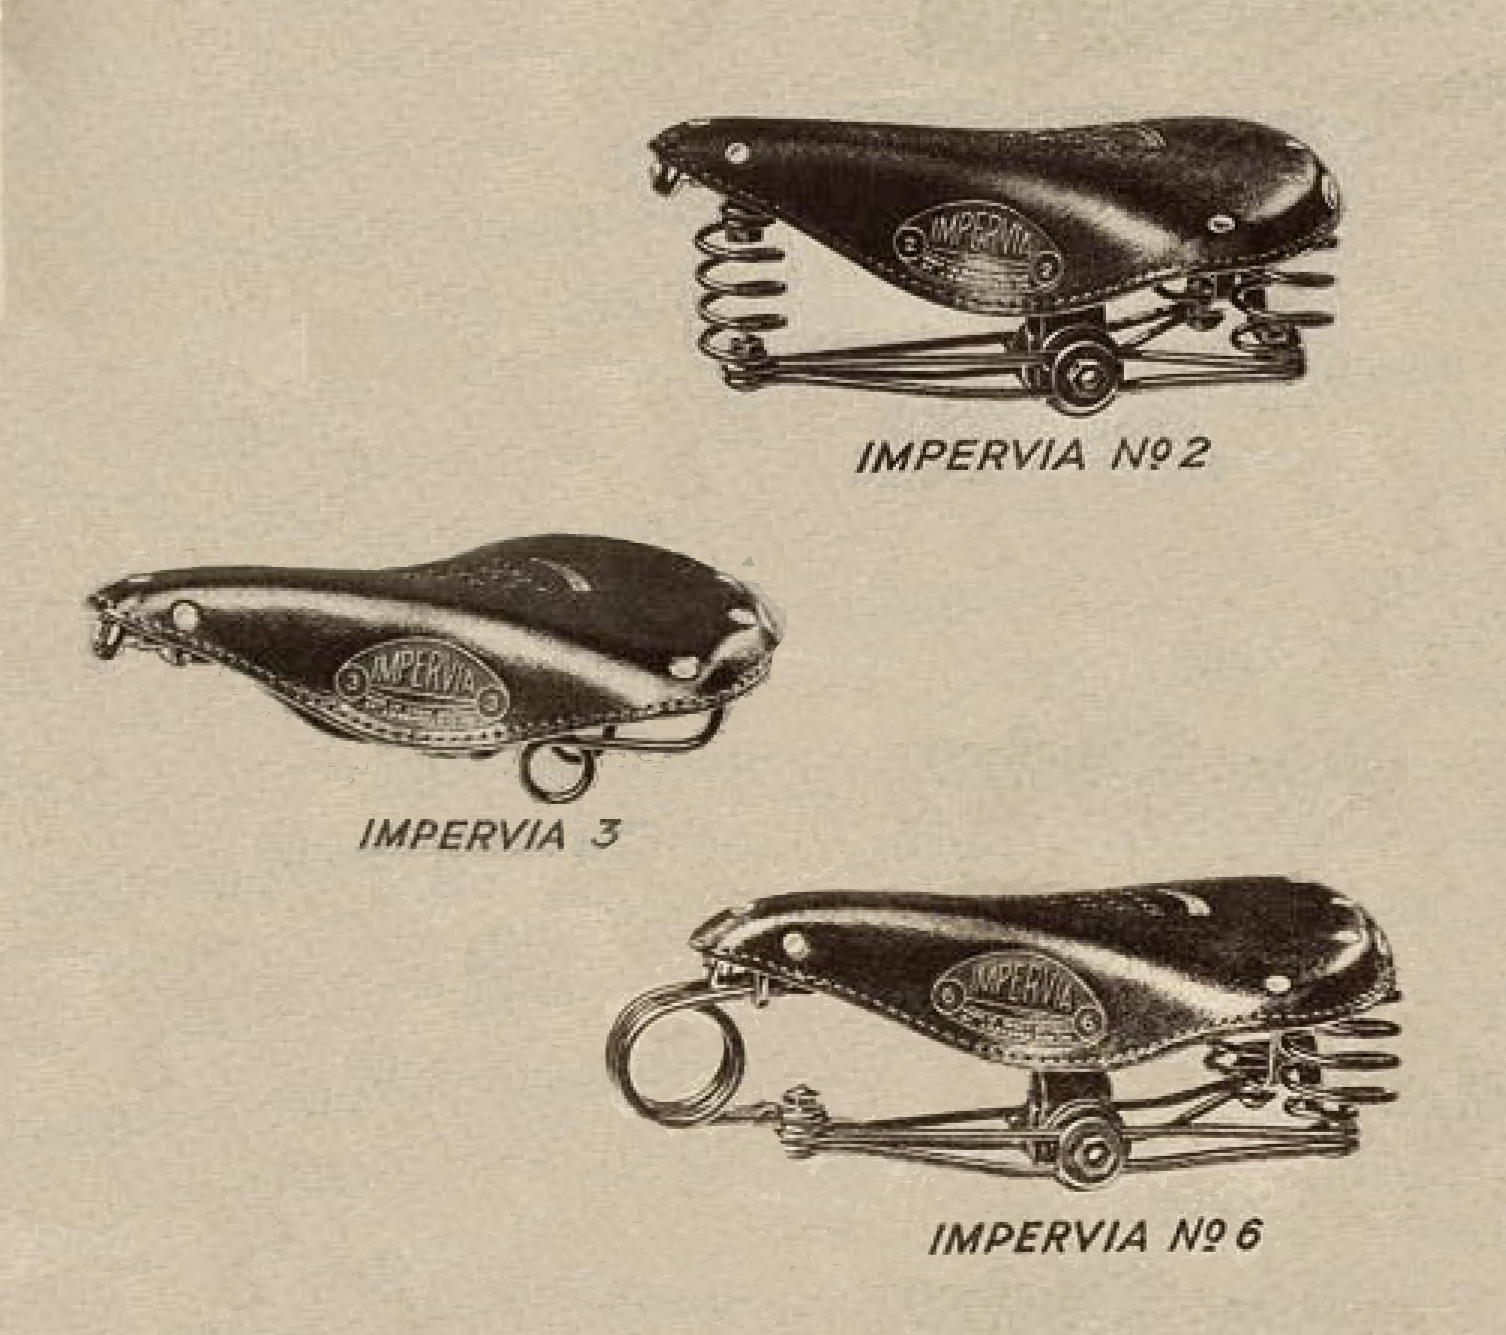 ebykr-brooks-impervia-saddles-1933-catalog